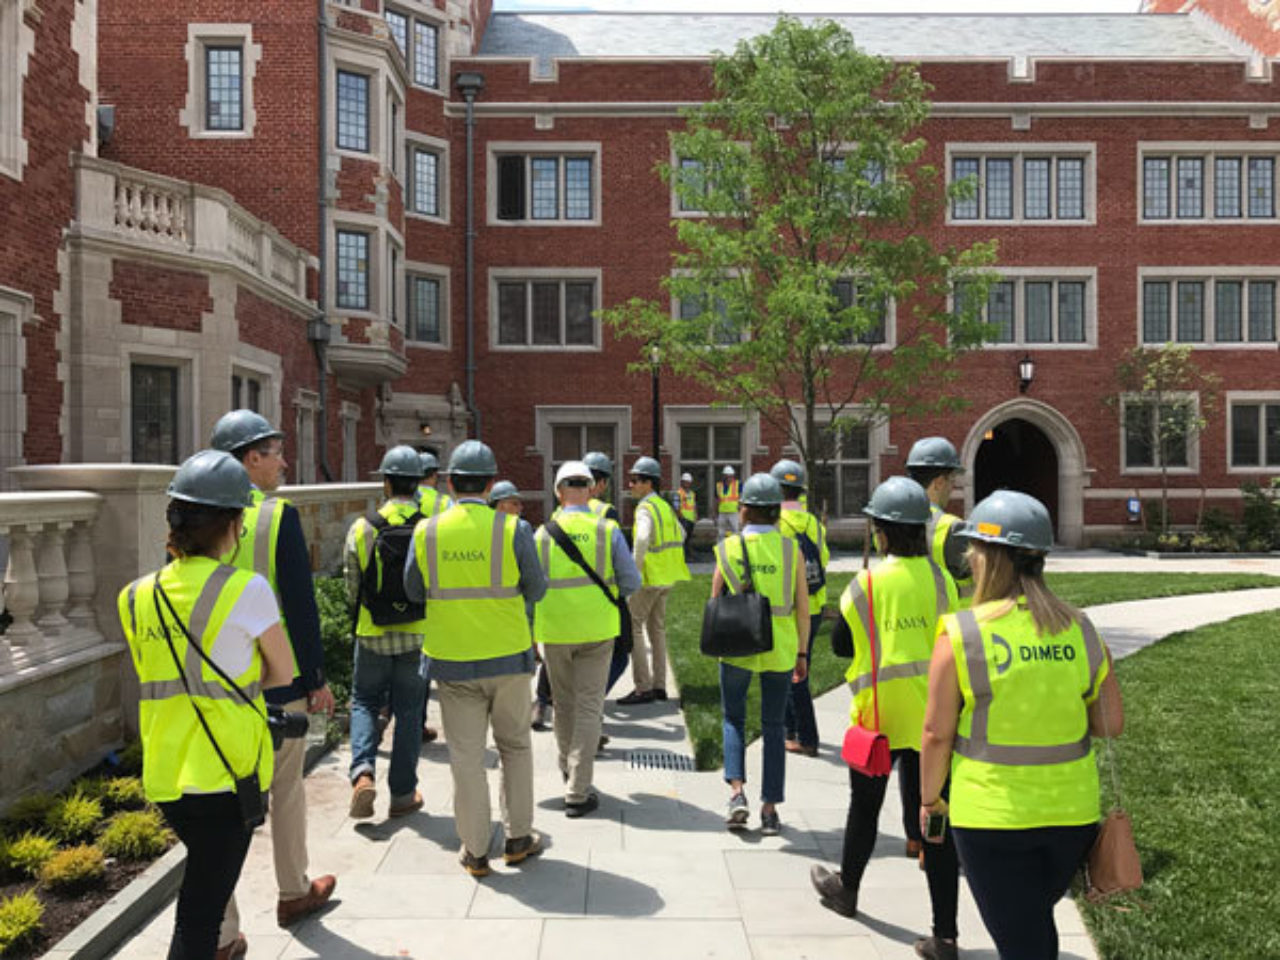 Tour participants cross through a courtyard while touring the new residential colleges